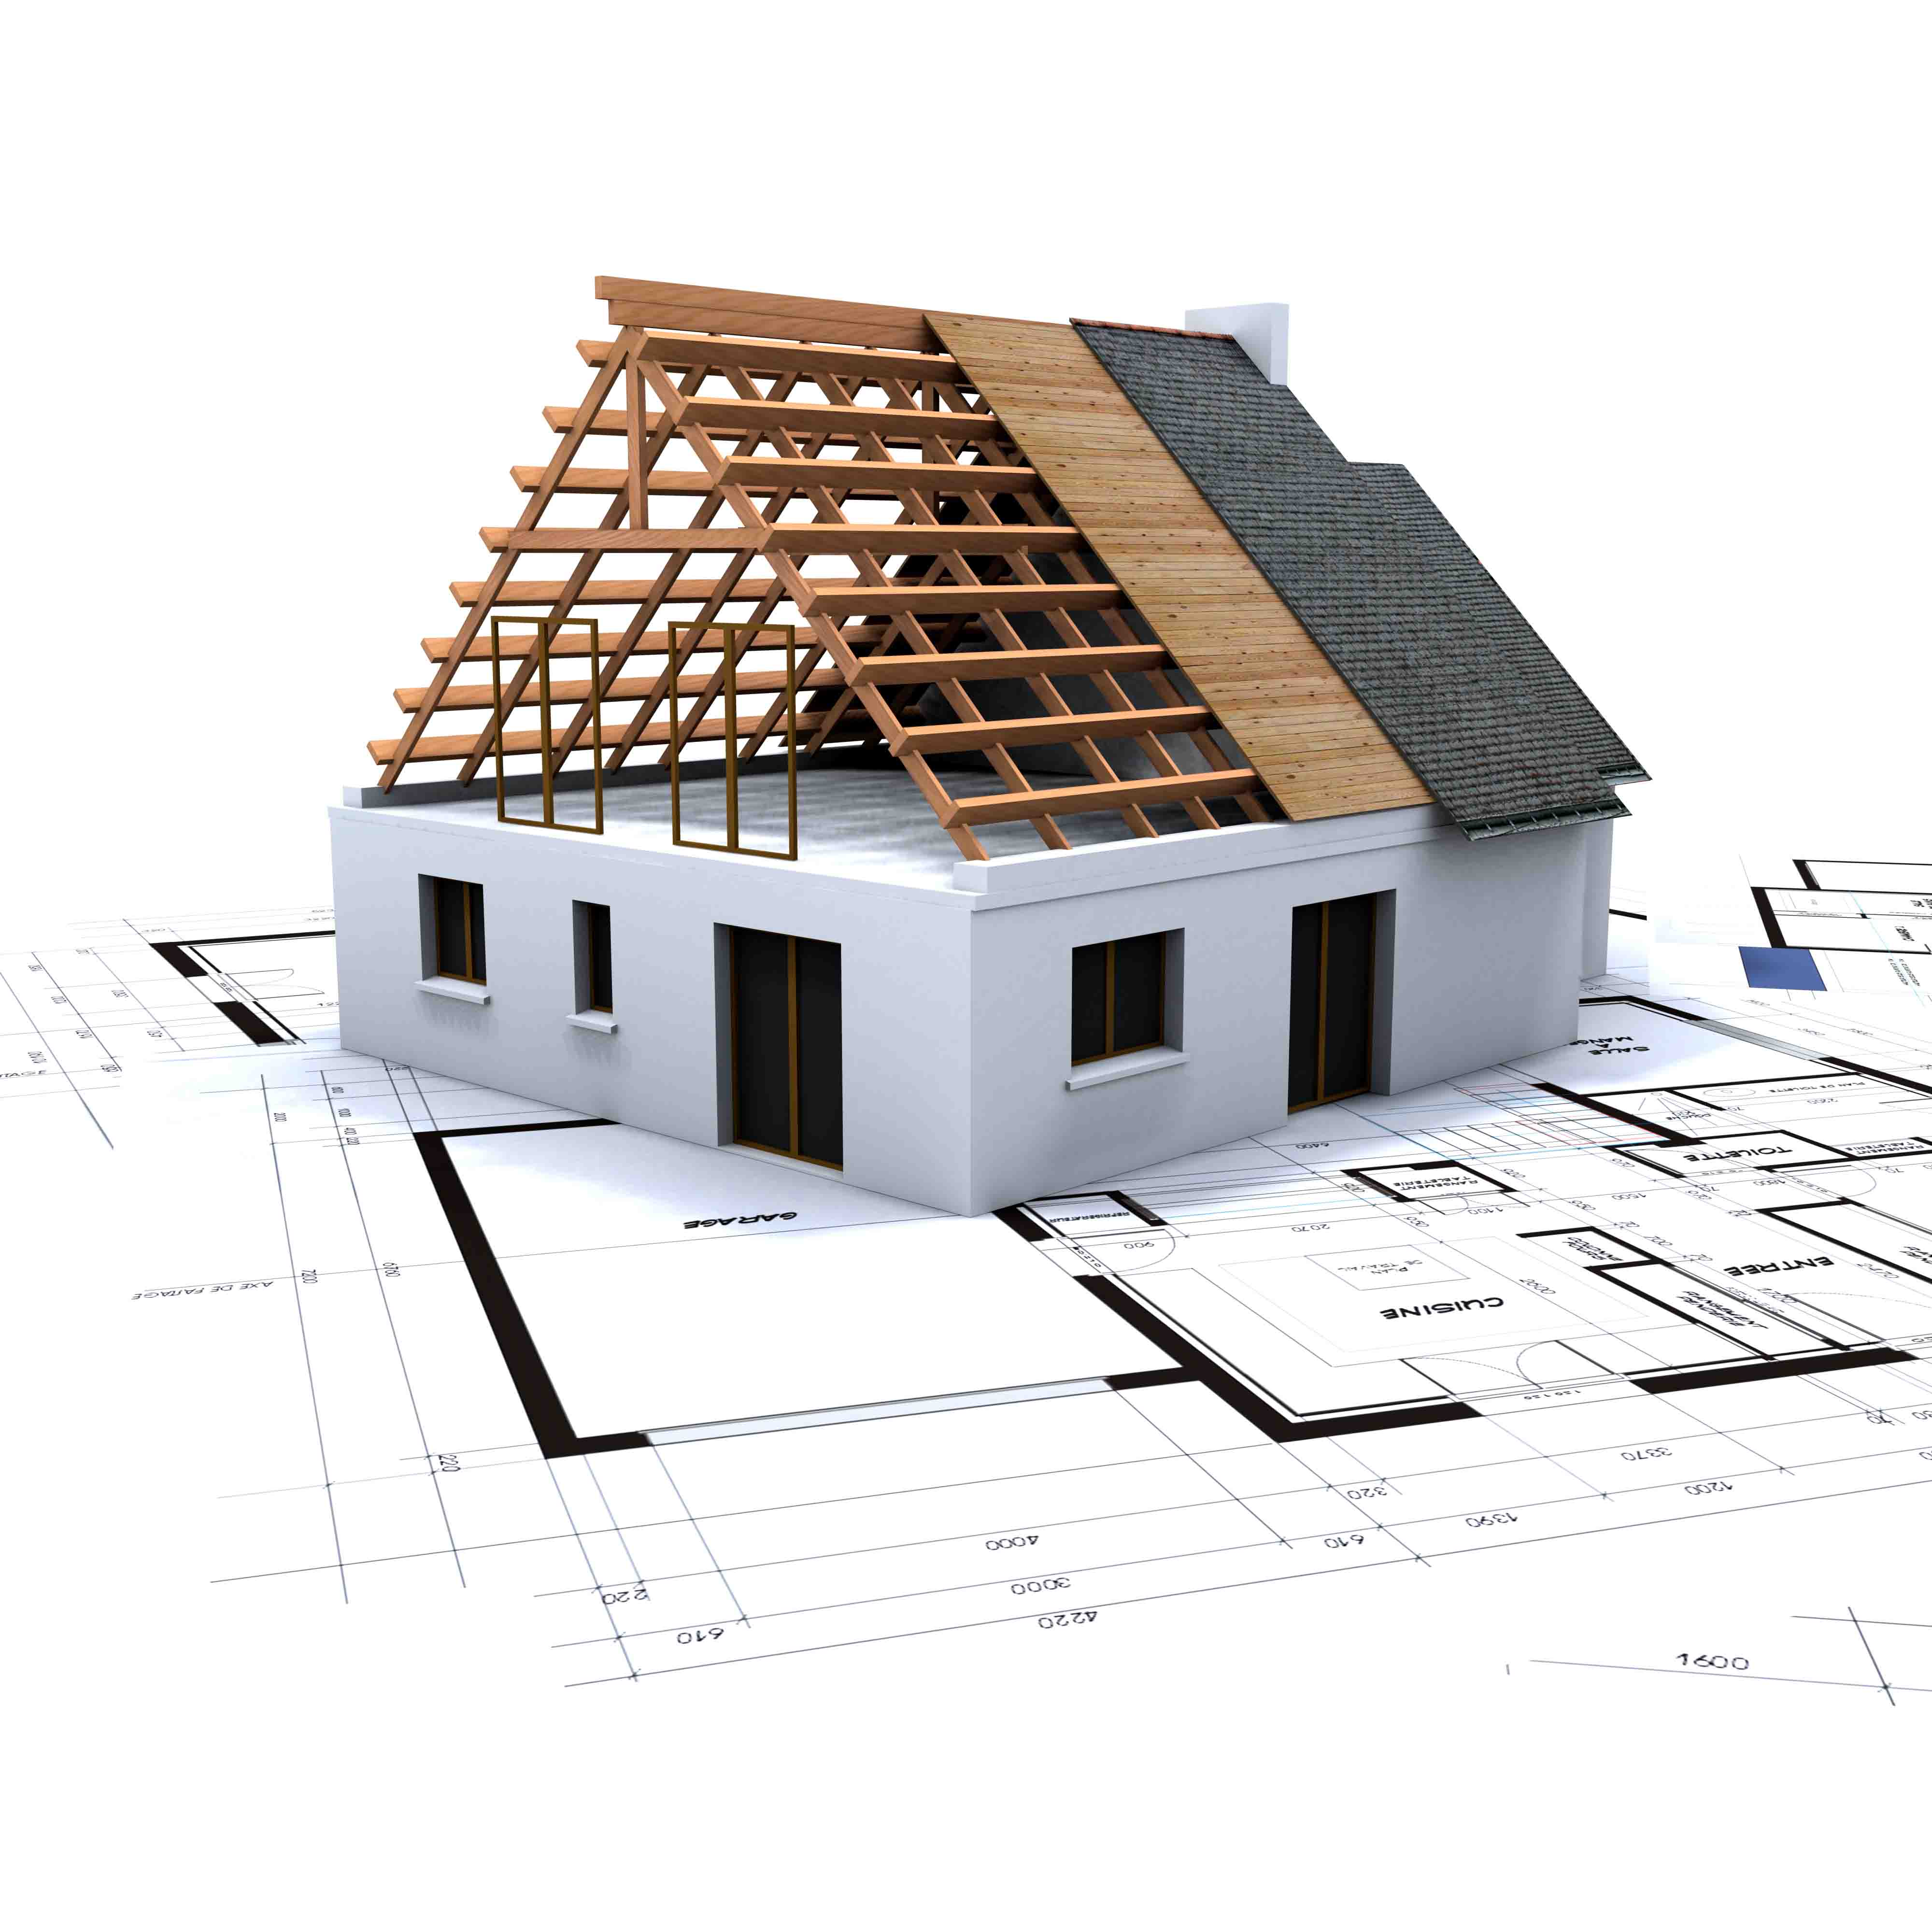 sip report on real estate company This is a research report on sip report by vinay prabhakar in internship reports category search and upload all types of sip report projects for mba's on managementparadisecom.